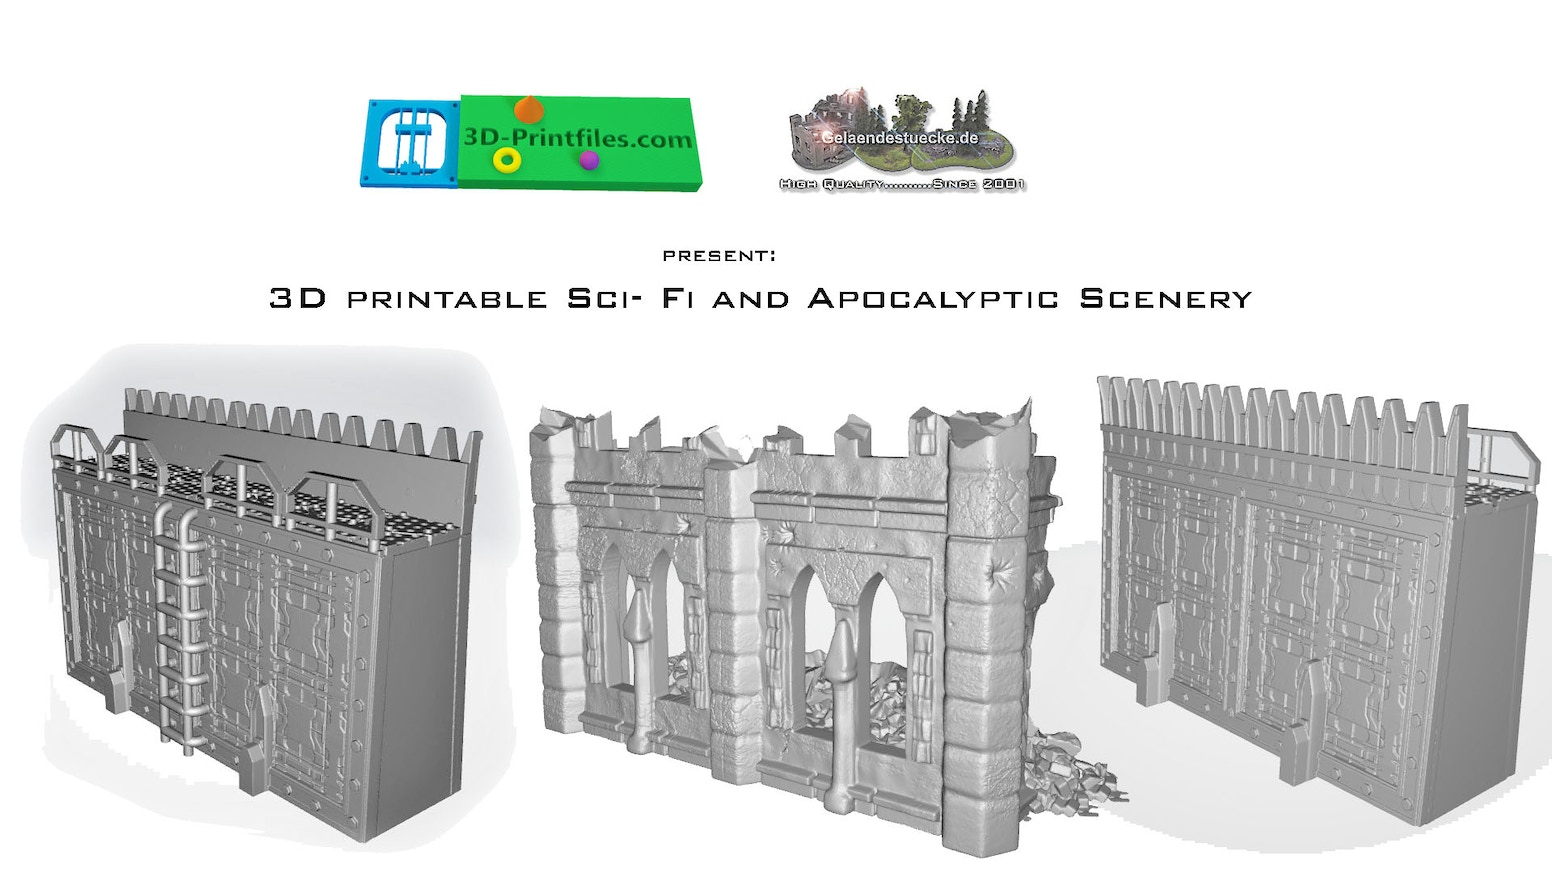 3D printable Sci- Fi and Apocalyptic Scenery -OpenLOCK by ESLO